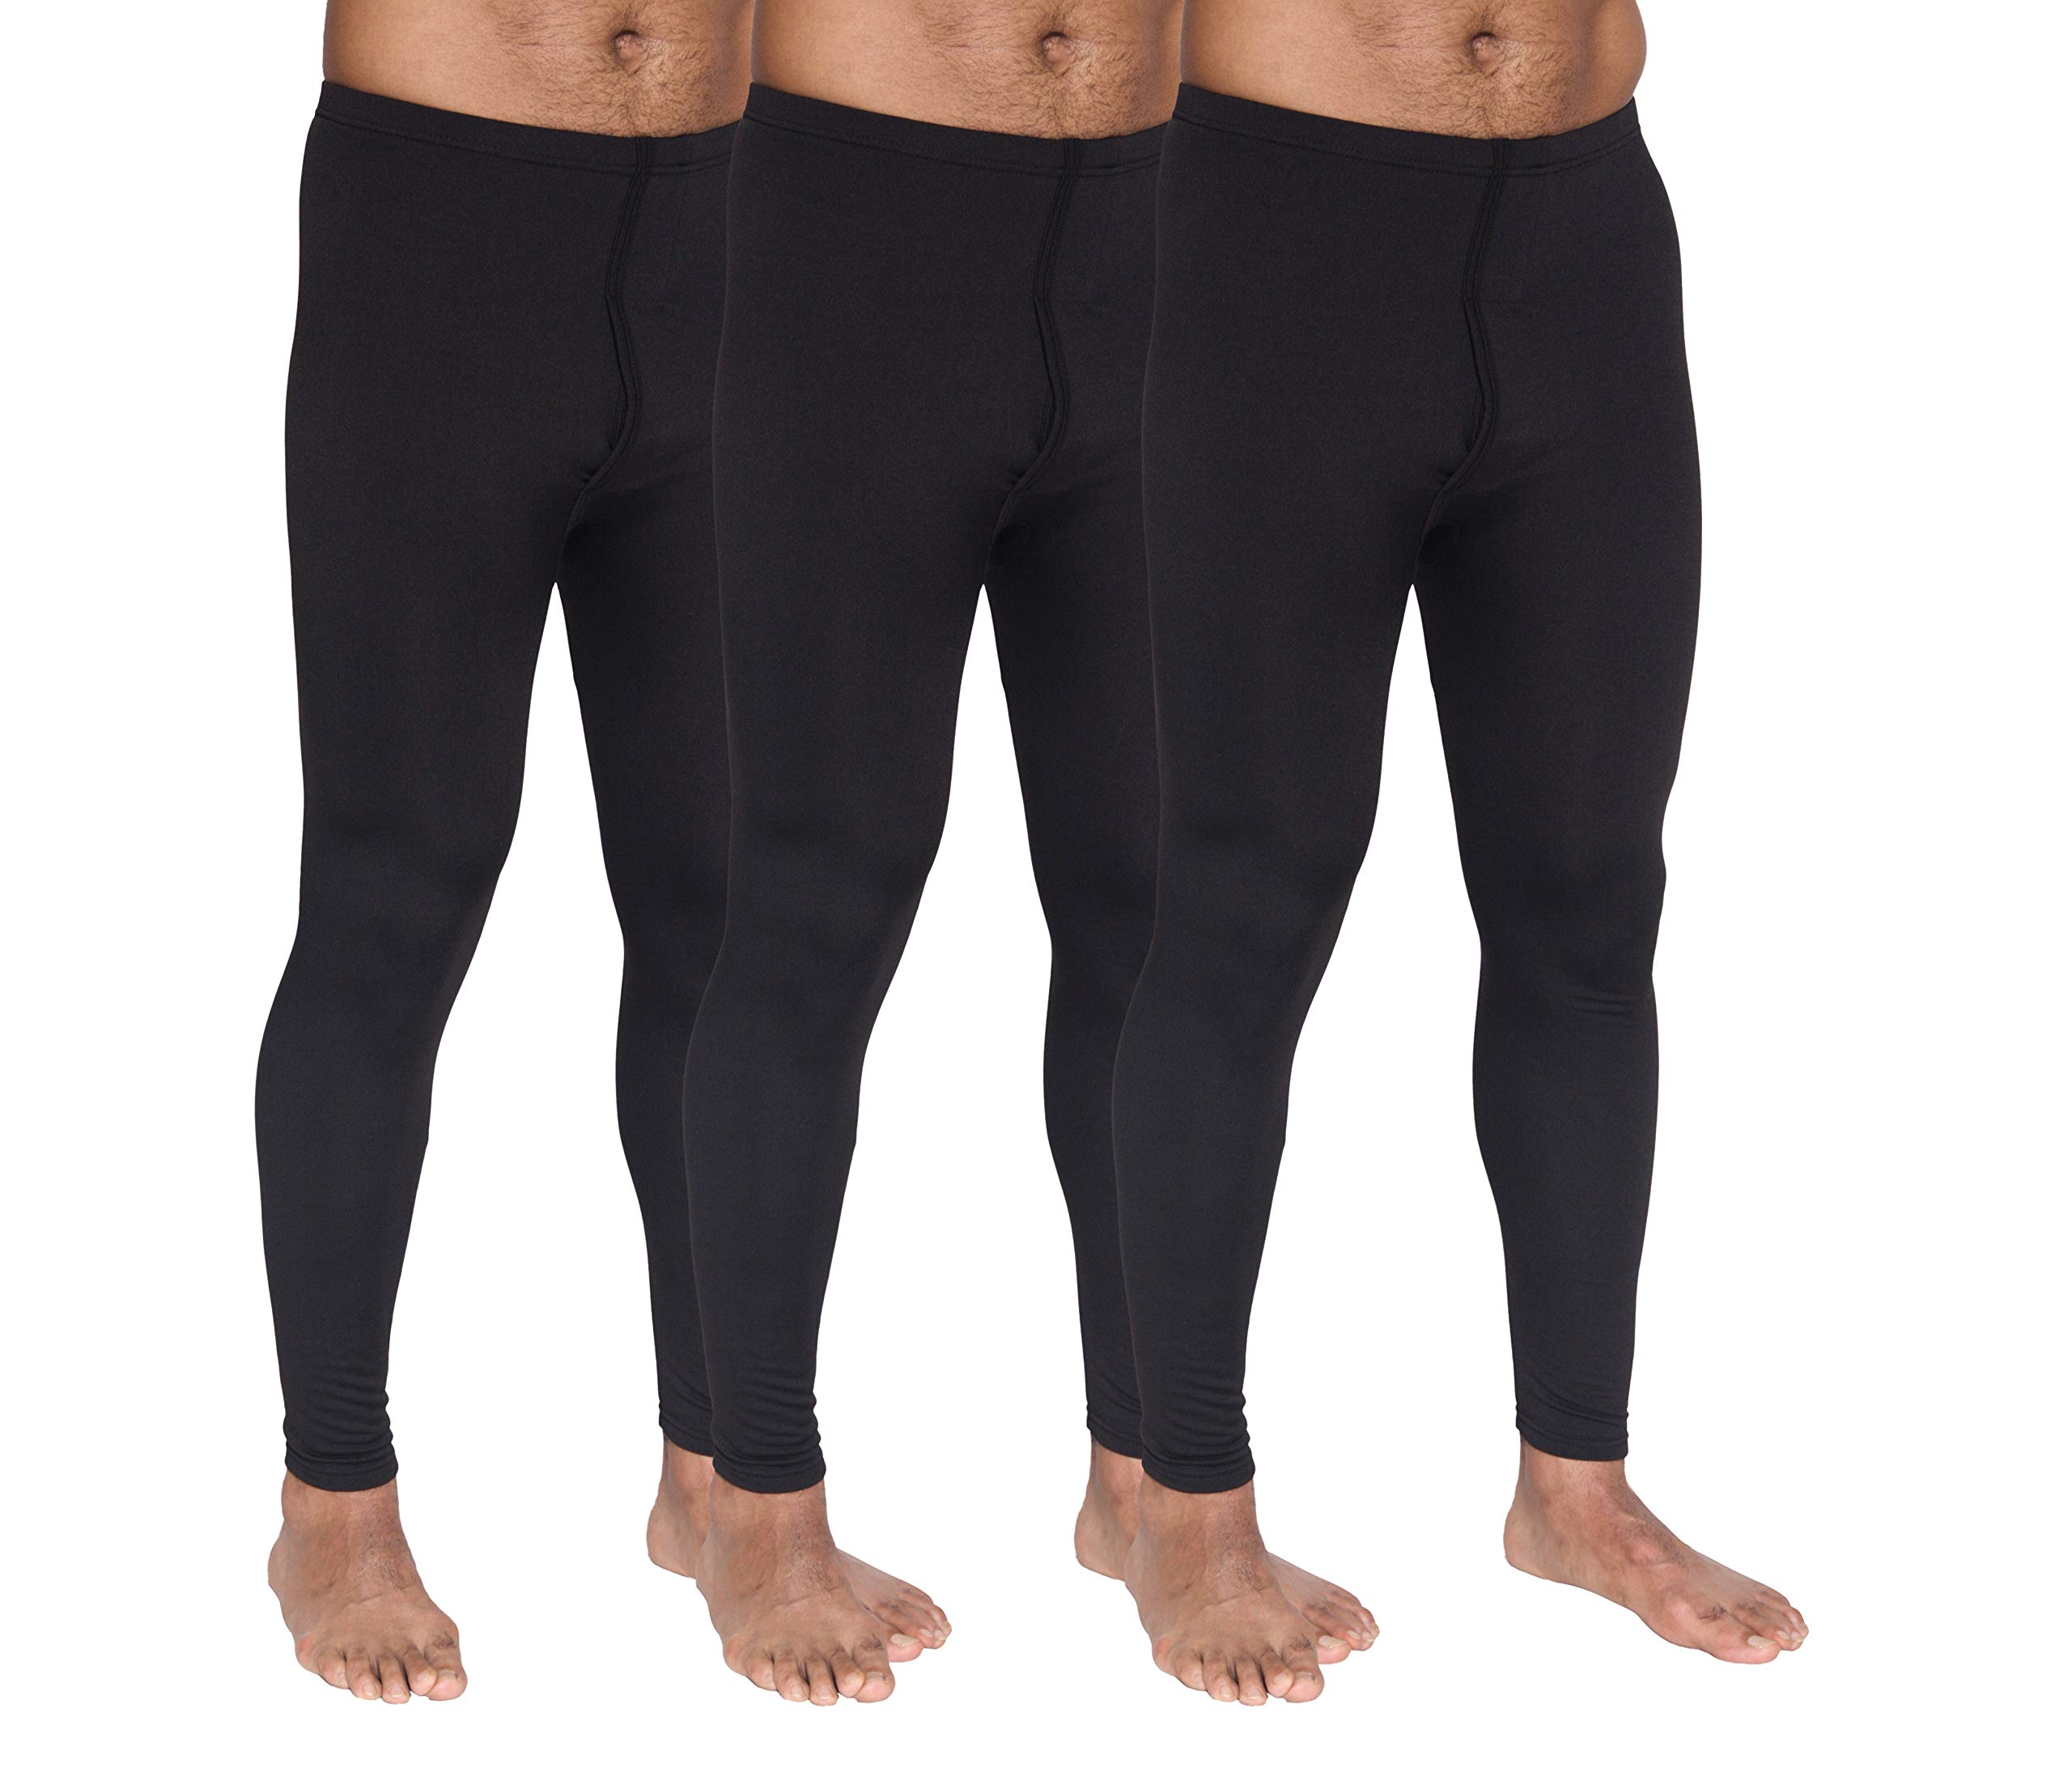 3-Pack: Men's Thermal Underwear Pants Set Warm Long Johns Compression Underpants Leggings Training Tights Active Clothing - Set 2, XL by Real Essentials